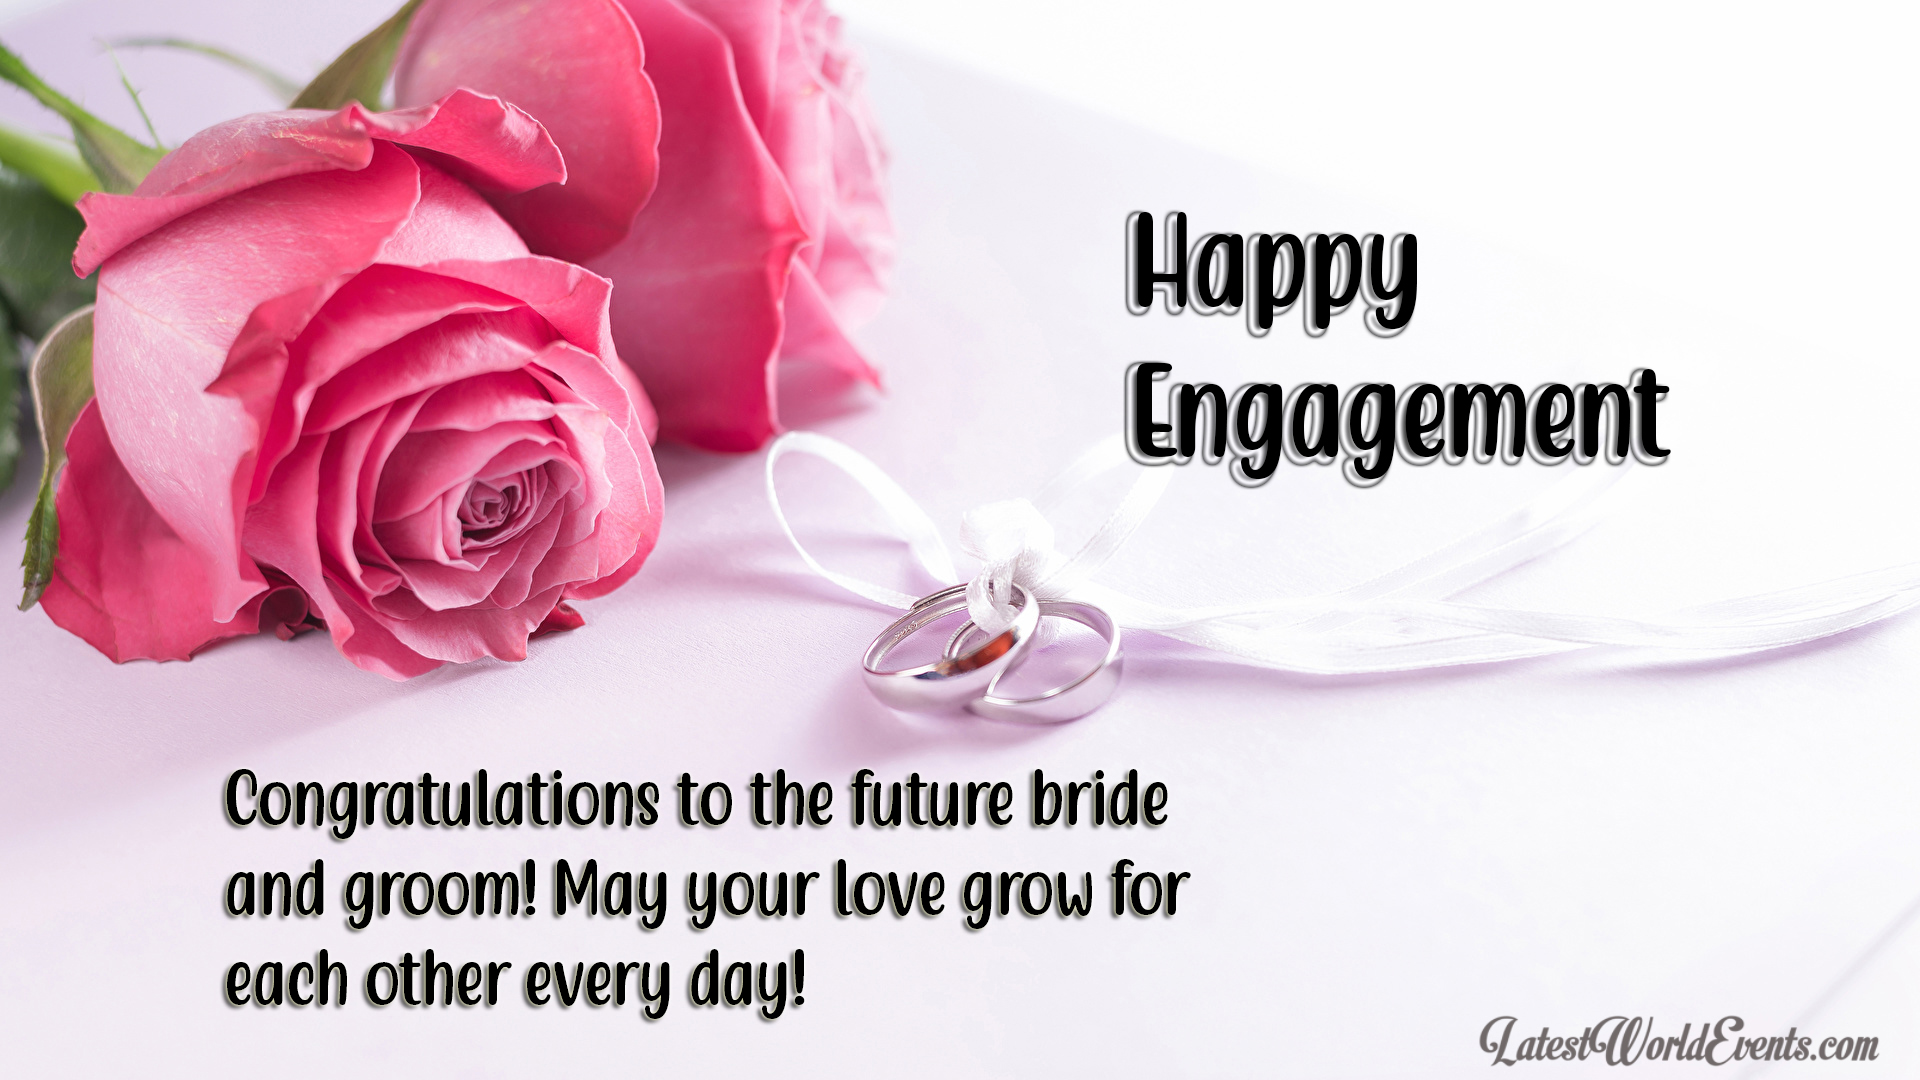 happy engagement wishes for friend engagement images quotes